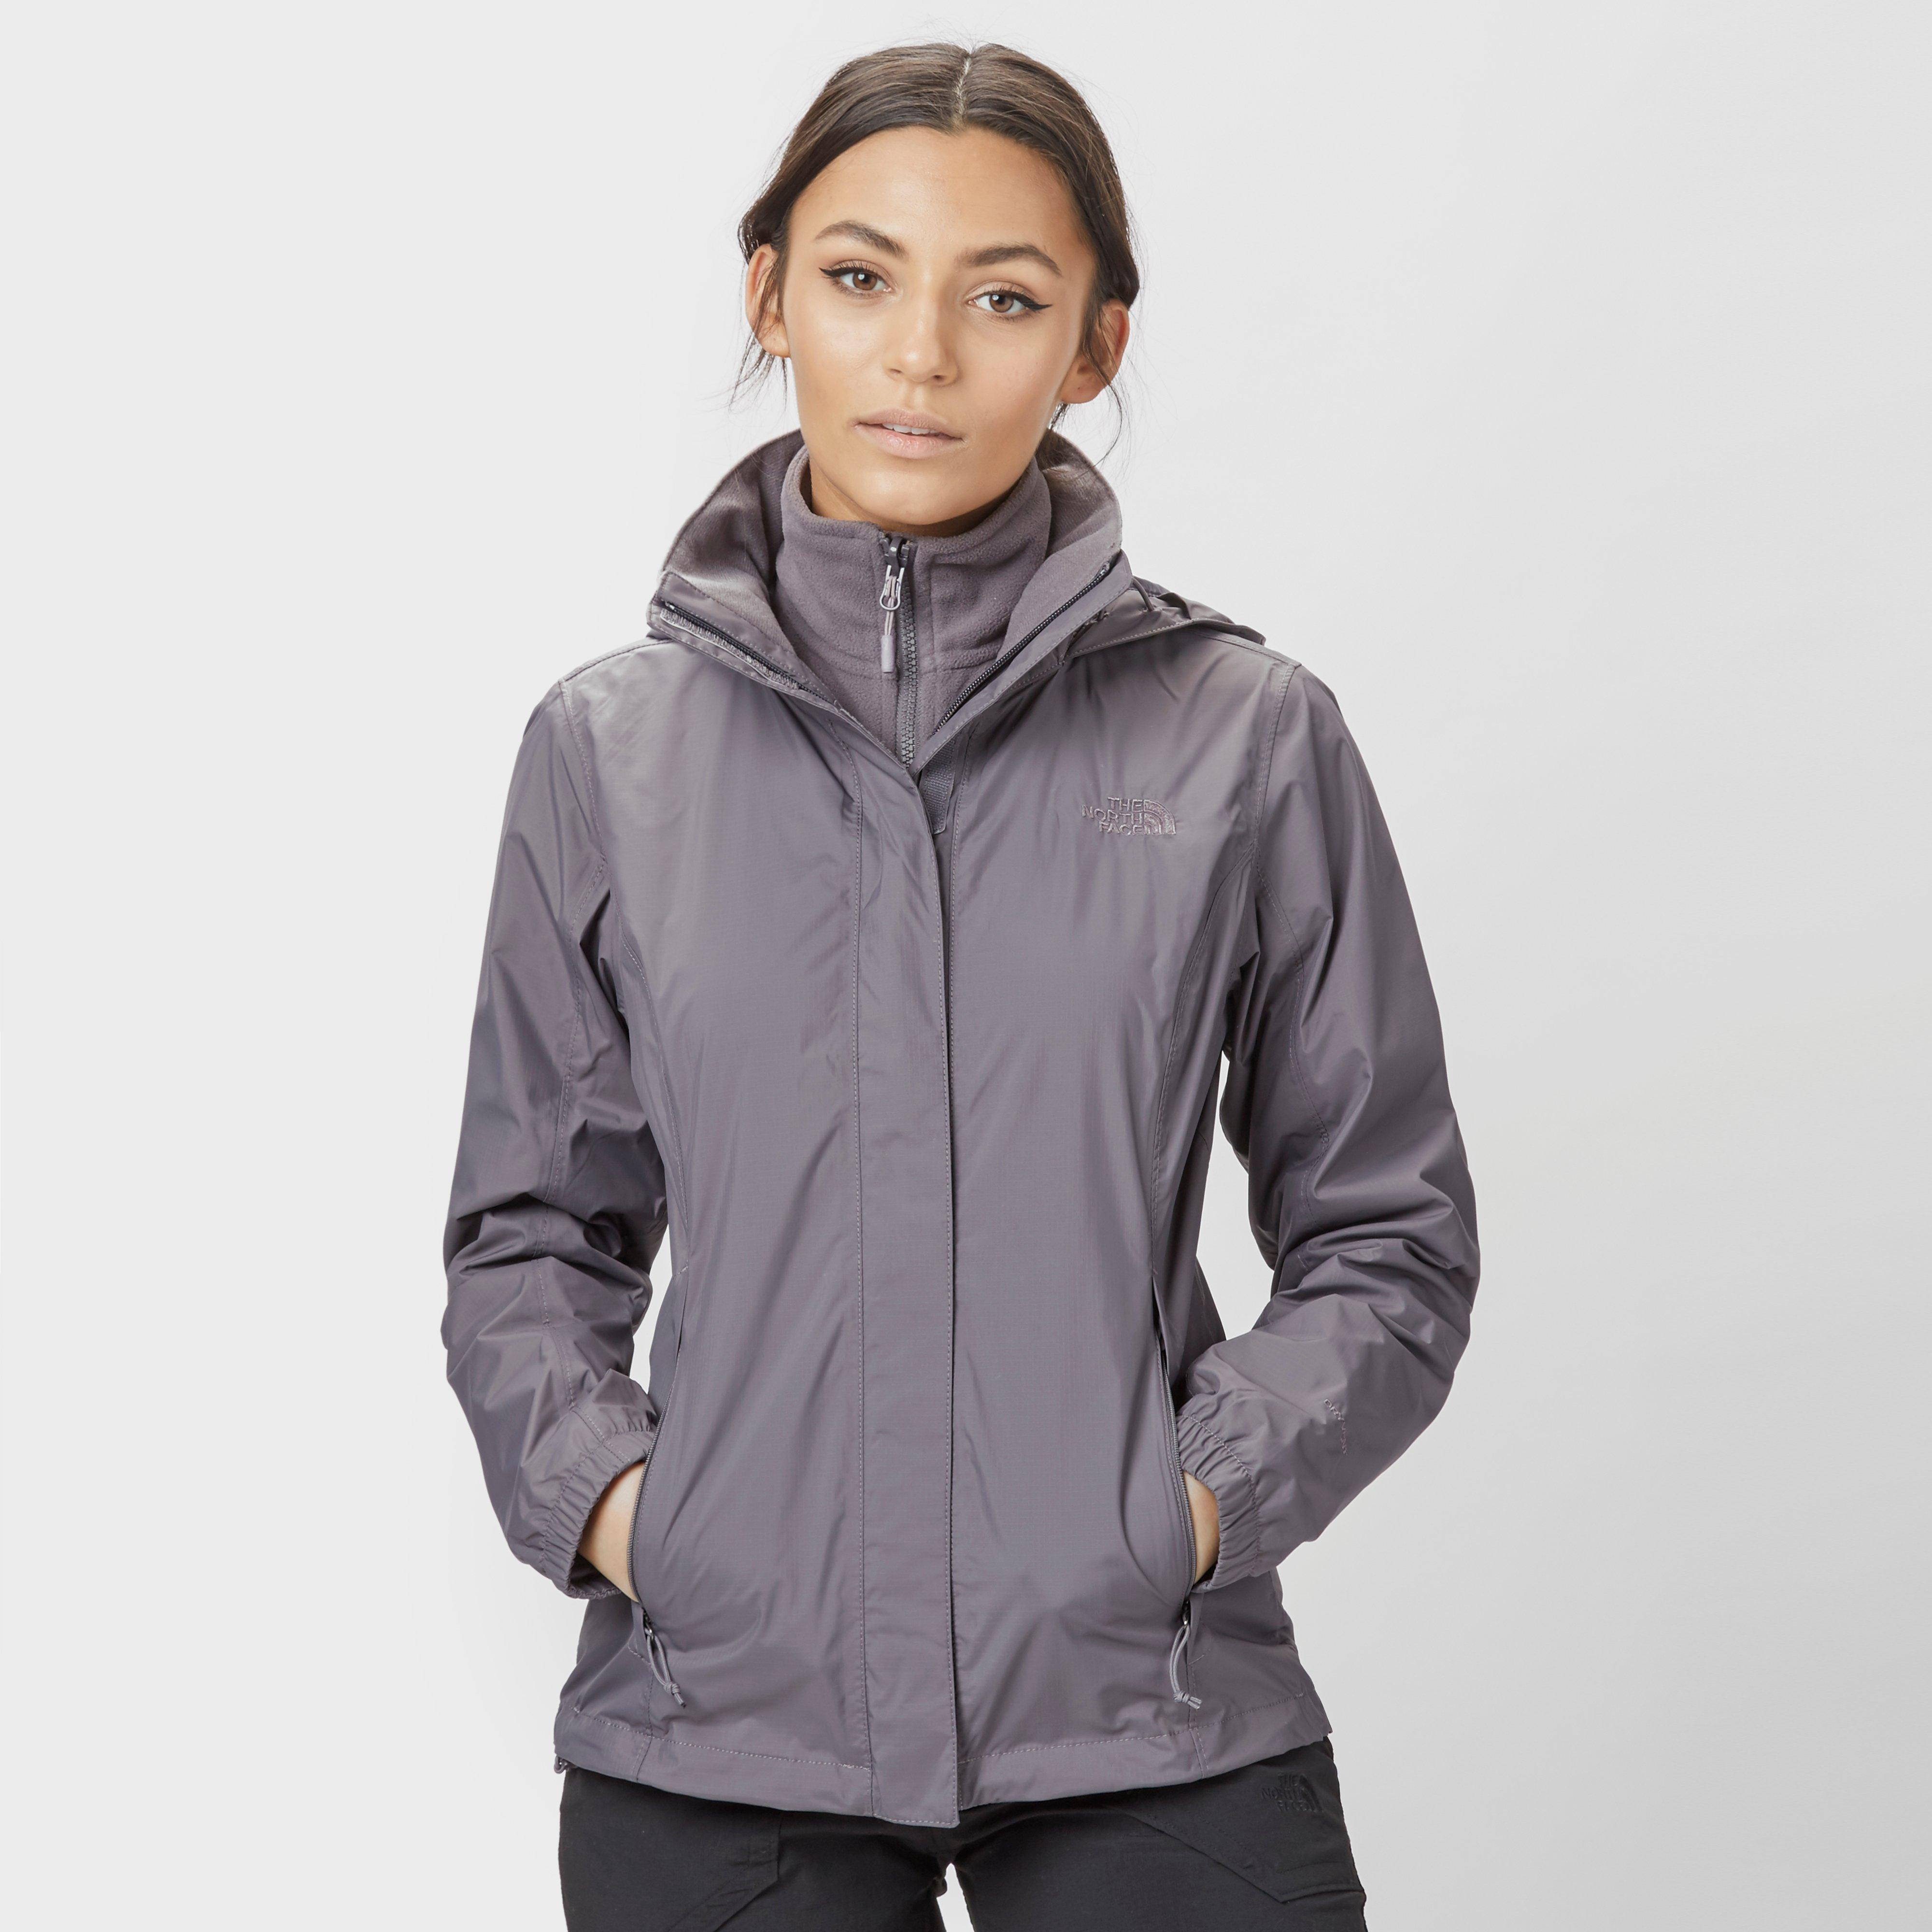 North face resolve jacket women